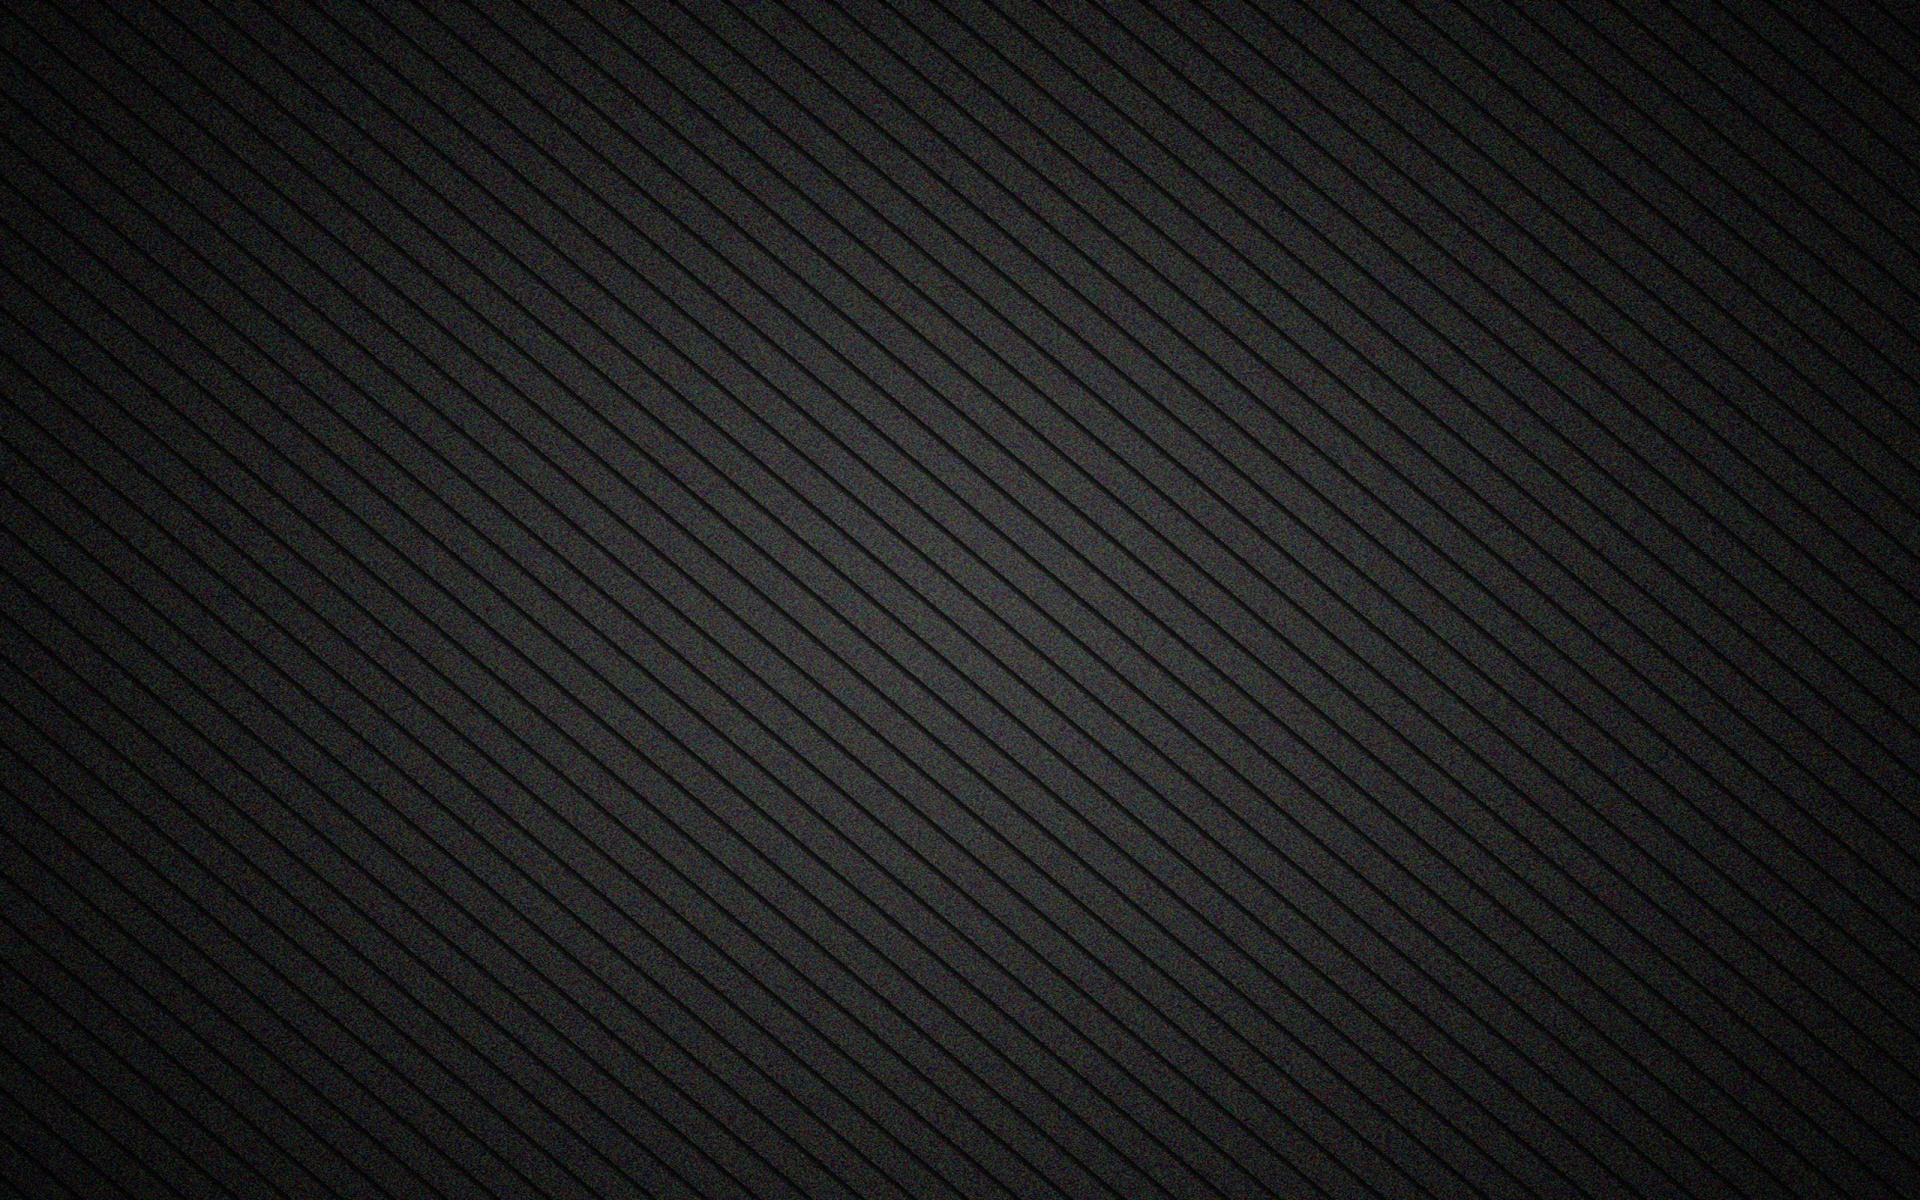 Black Wallpaper Fullscreen HD